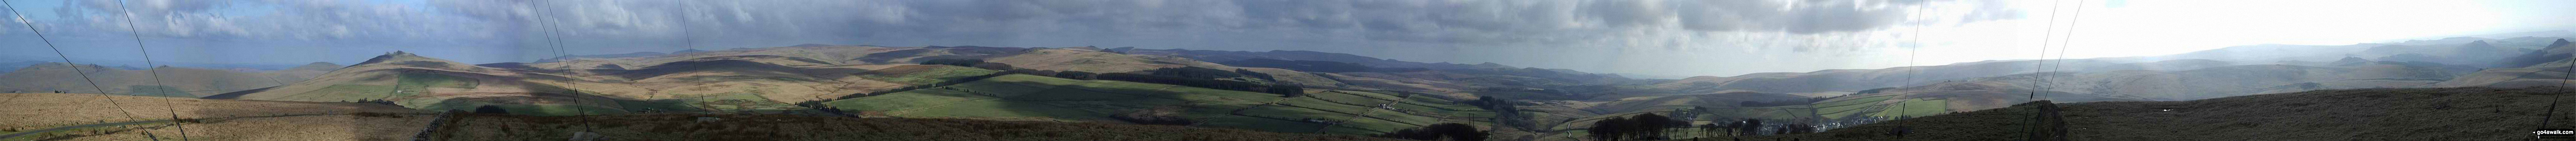 Walk de122 North Hessary Tor, Great Mis Tor and Great Staple Tor from Princetown - Dartmoor from North Hessary Tor